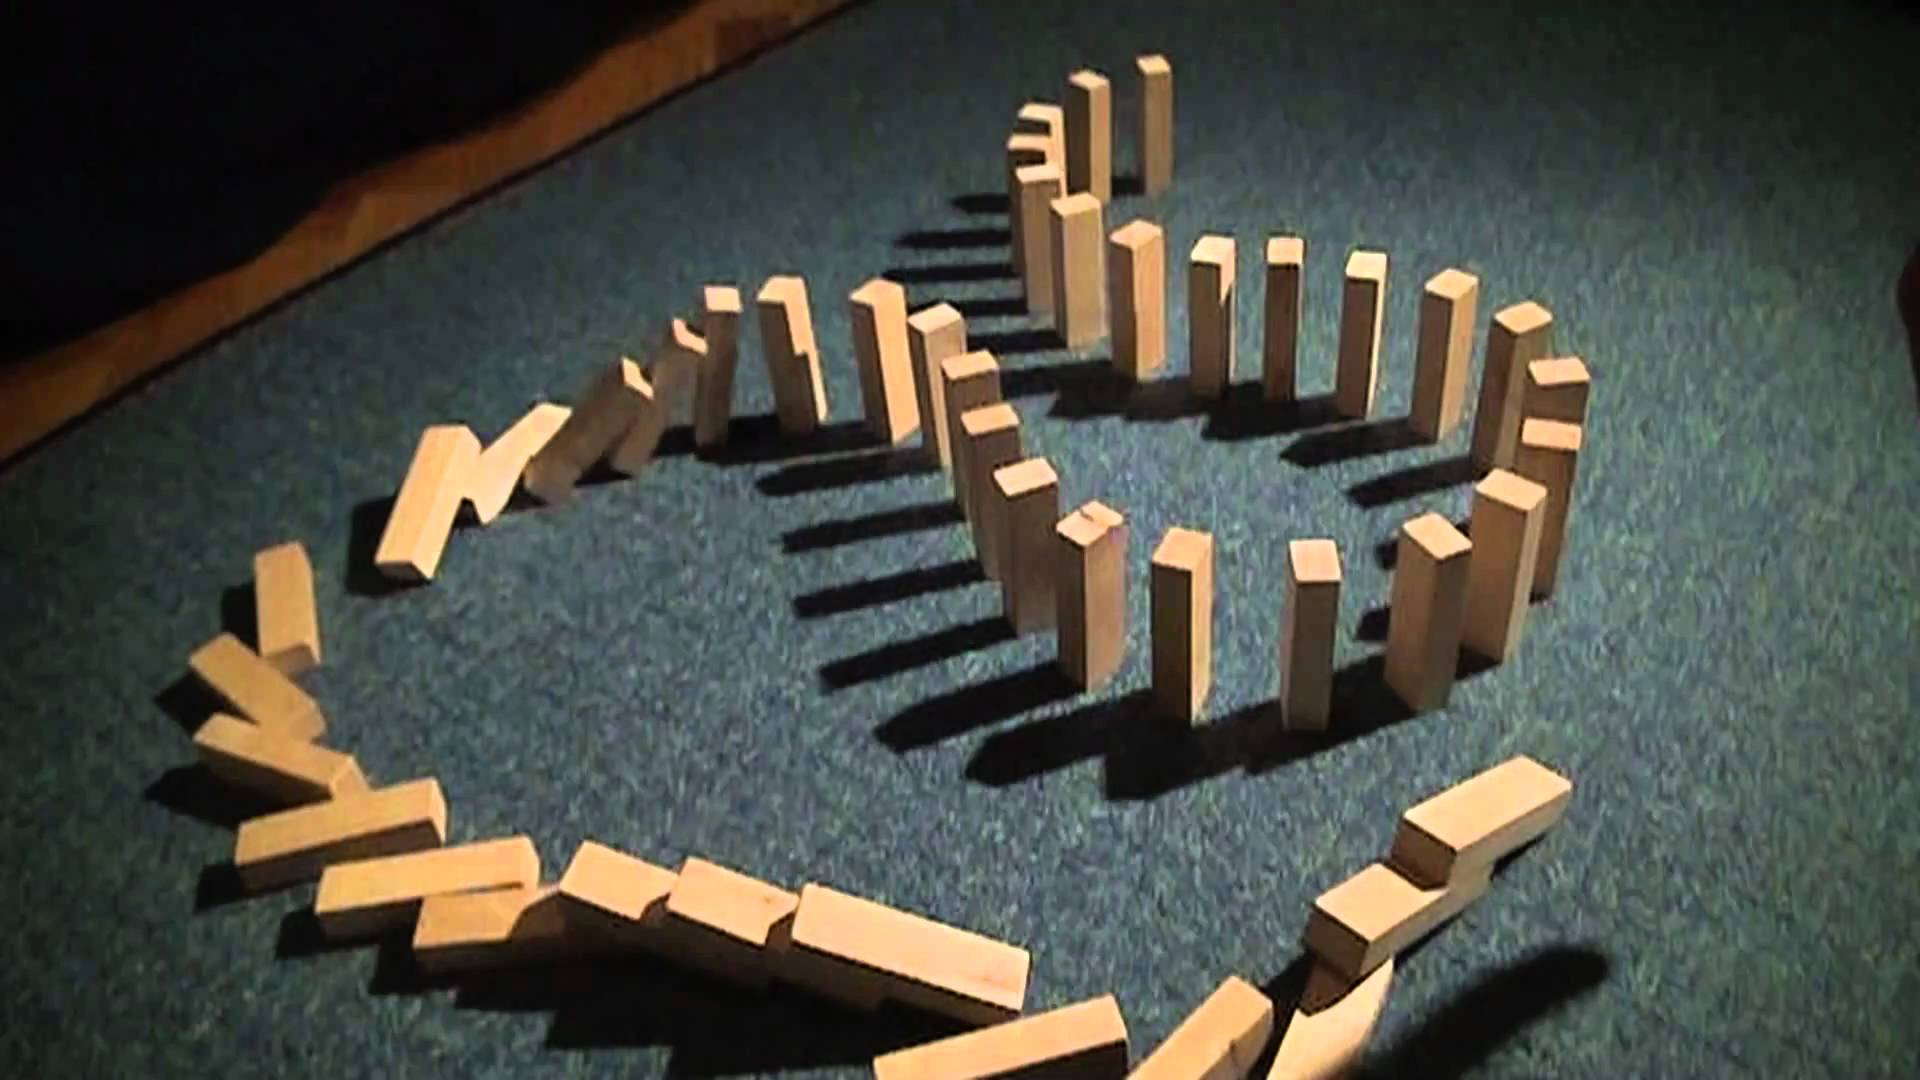 Source: YouTube: Sony HDR-CX305: Dominos Slow Motion [HD]